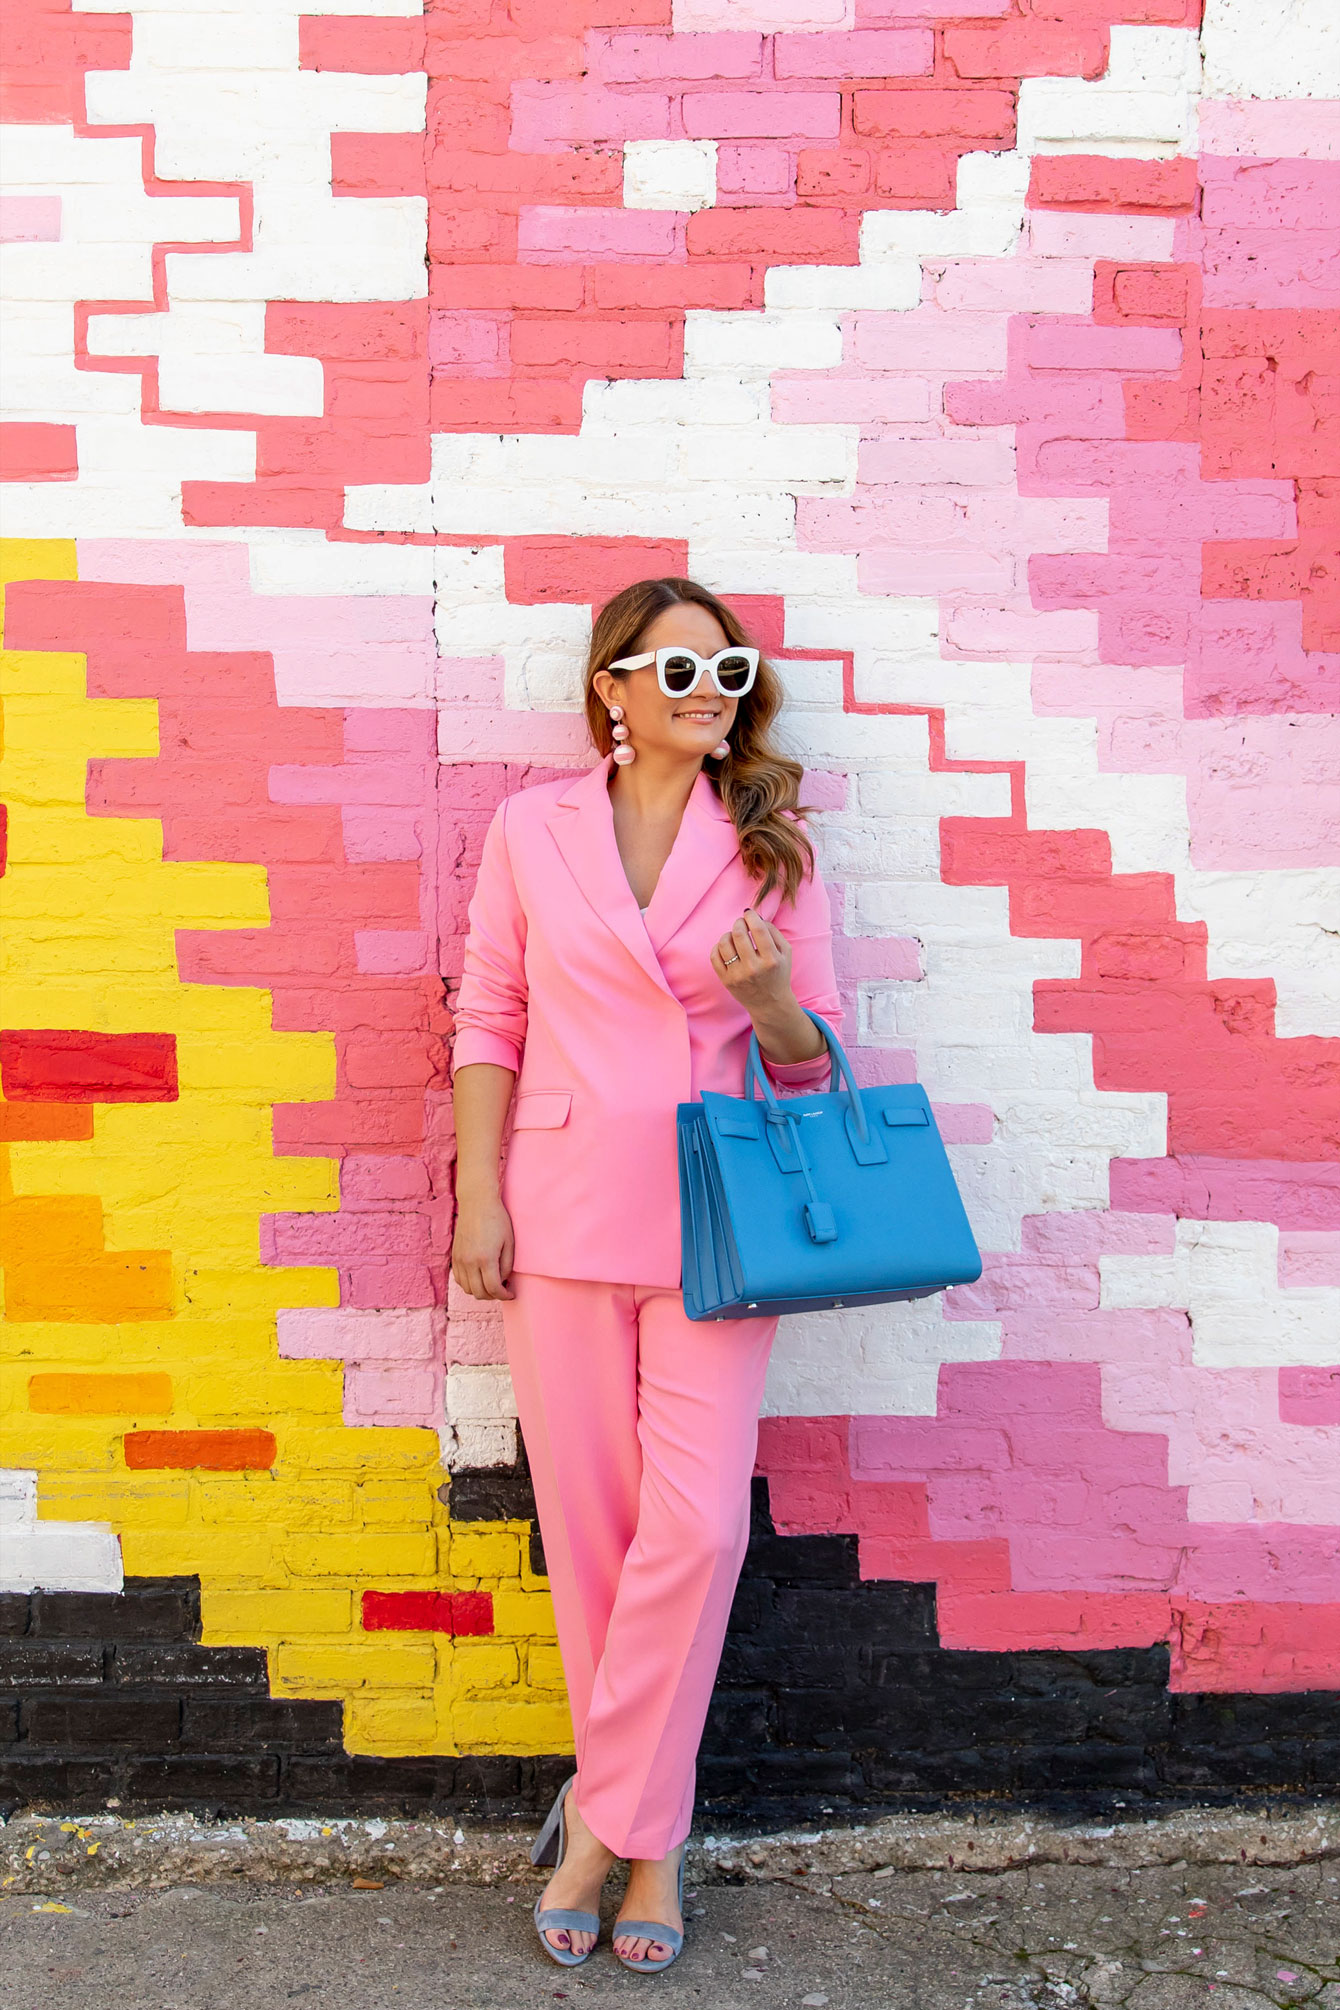 English Factory Pink Suit